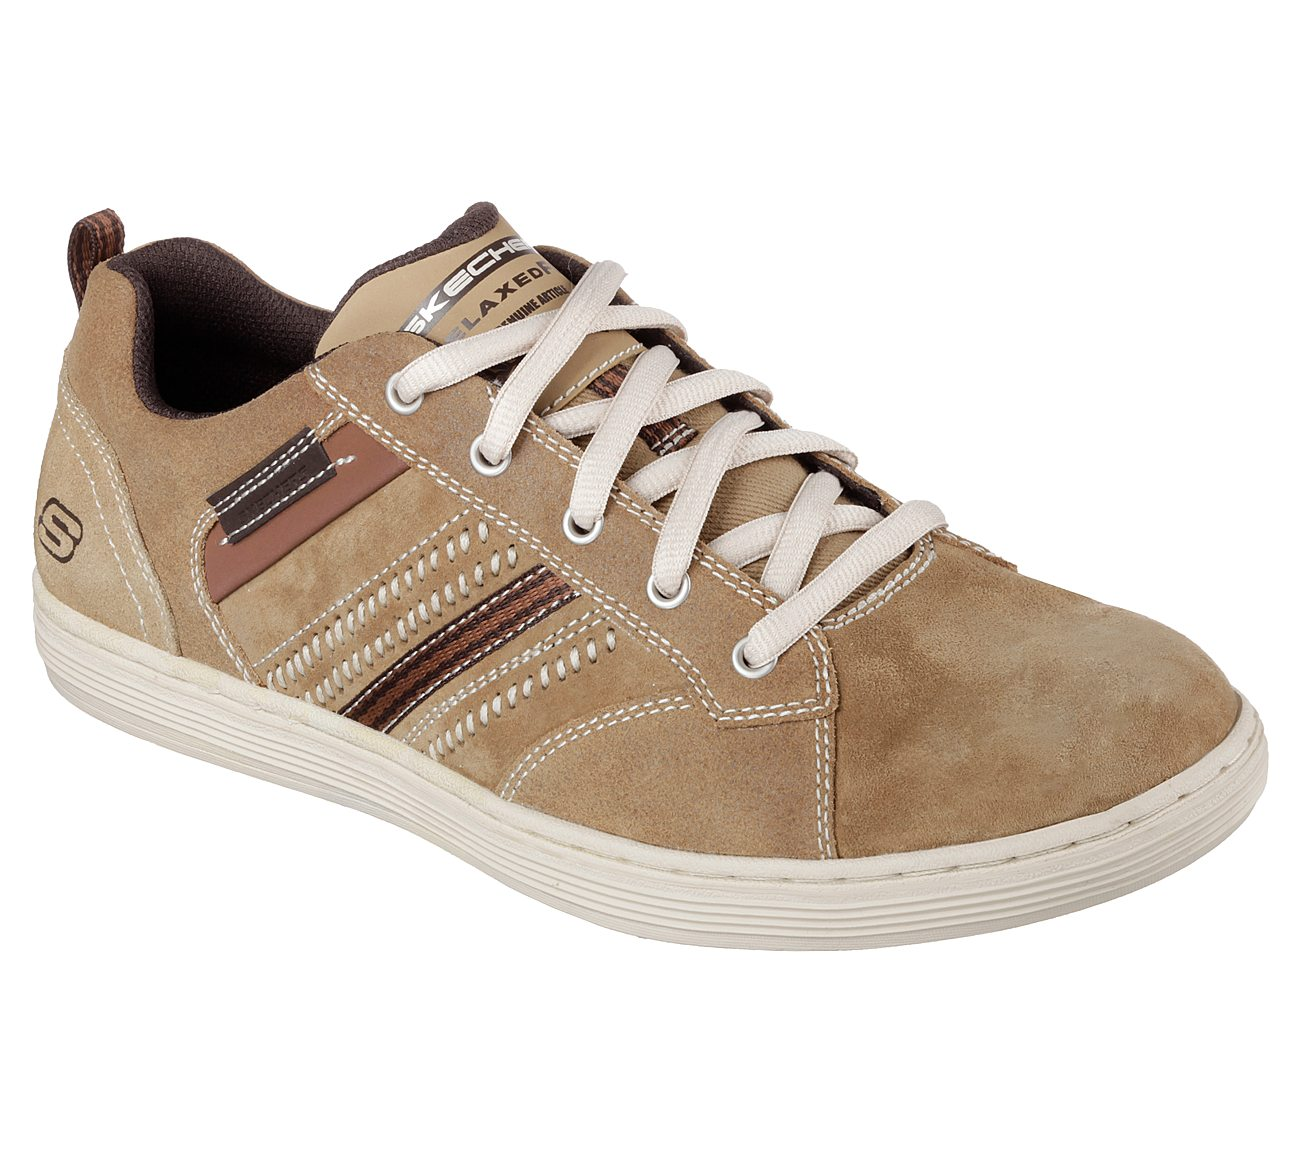 Skechers Shoes  Skechers 64633 Evole Mens Casual Shoes Tan